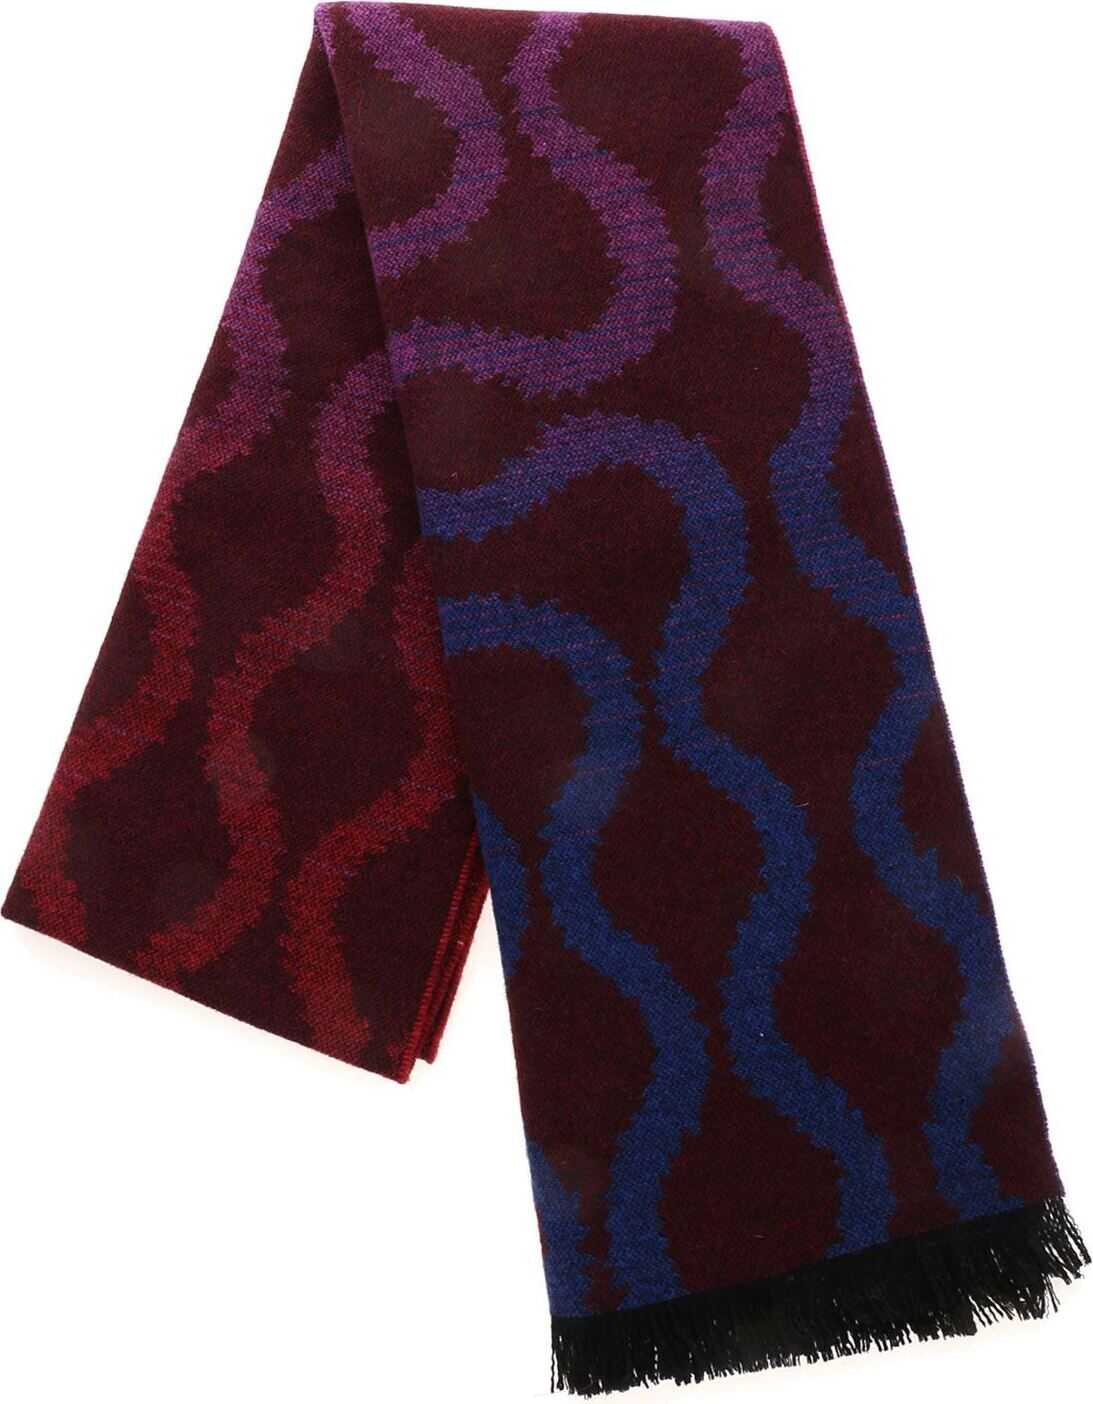 Vivienne Westwood Squiggle Fire Scarf In Burgundy Red